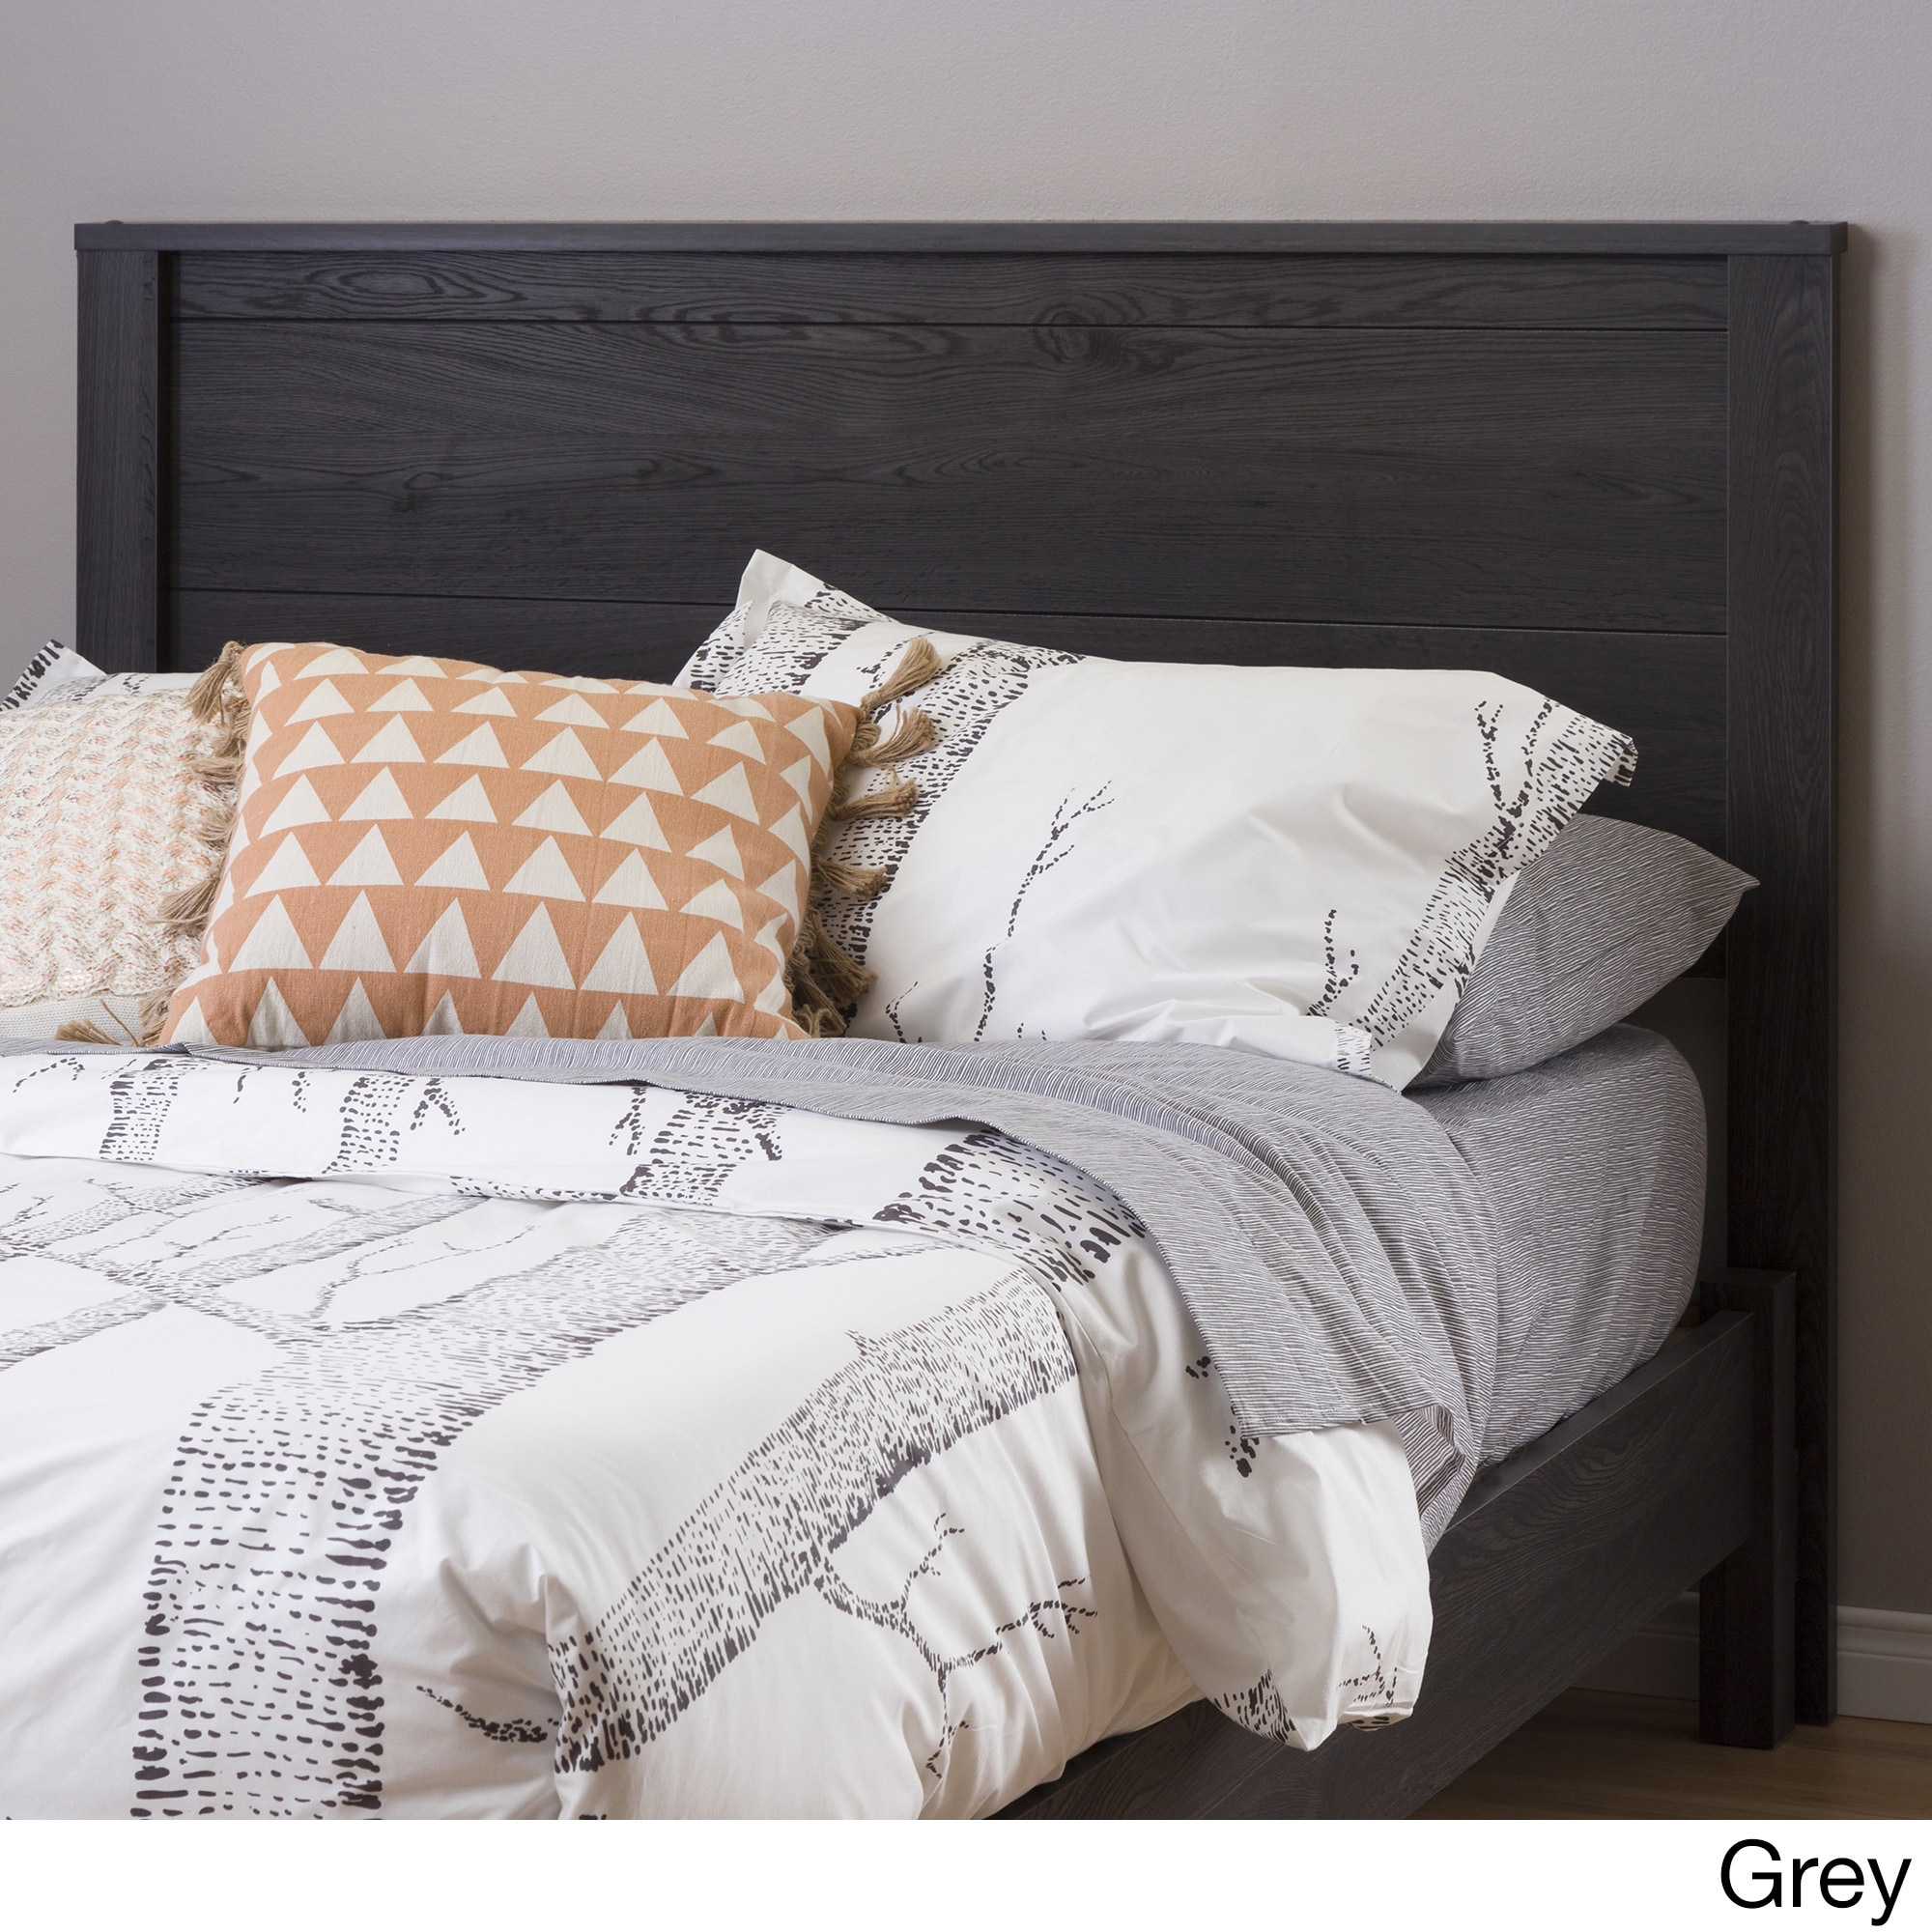 Charmant Buy Grey Headboards Online At Overstock.com | Our Best Bedroom Furniture  Deals